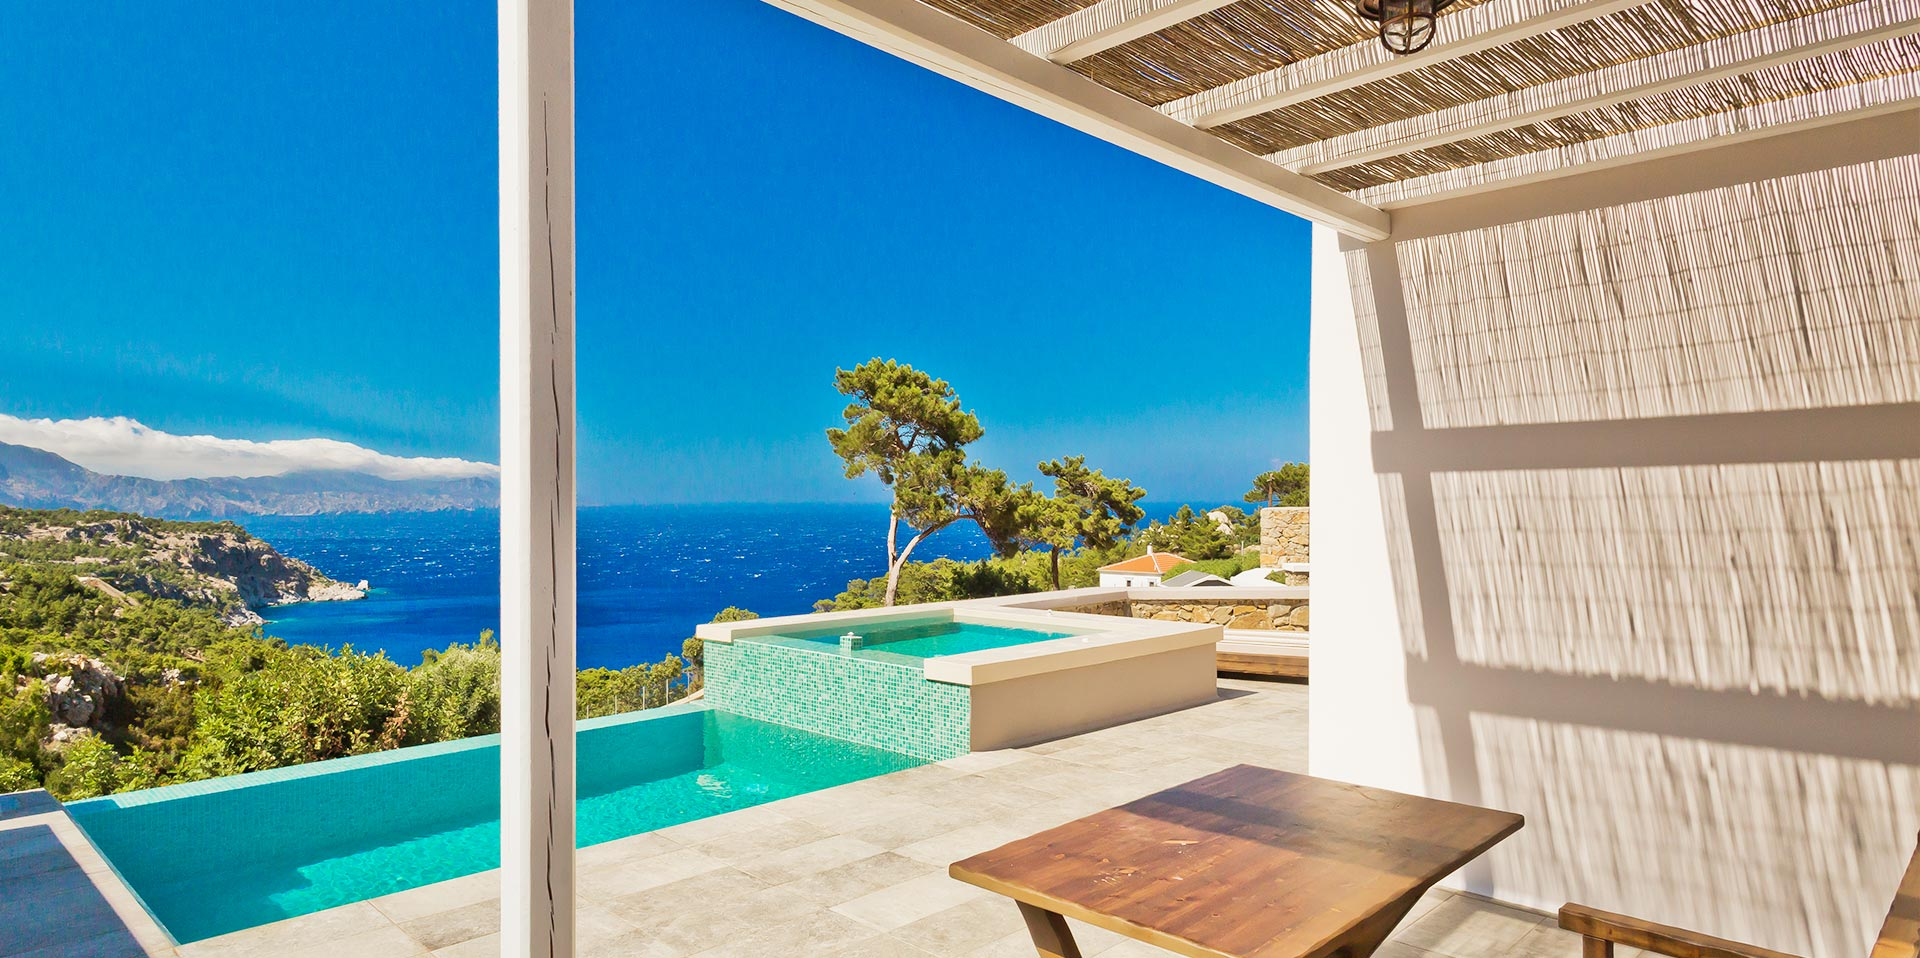 Lux Vew Suites, Oceanview Villas Karpathos Island Greece